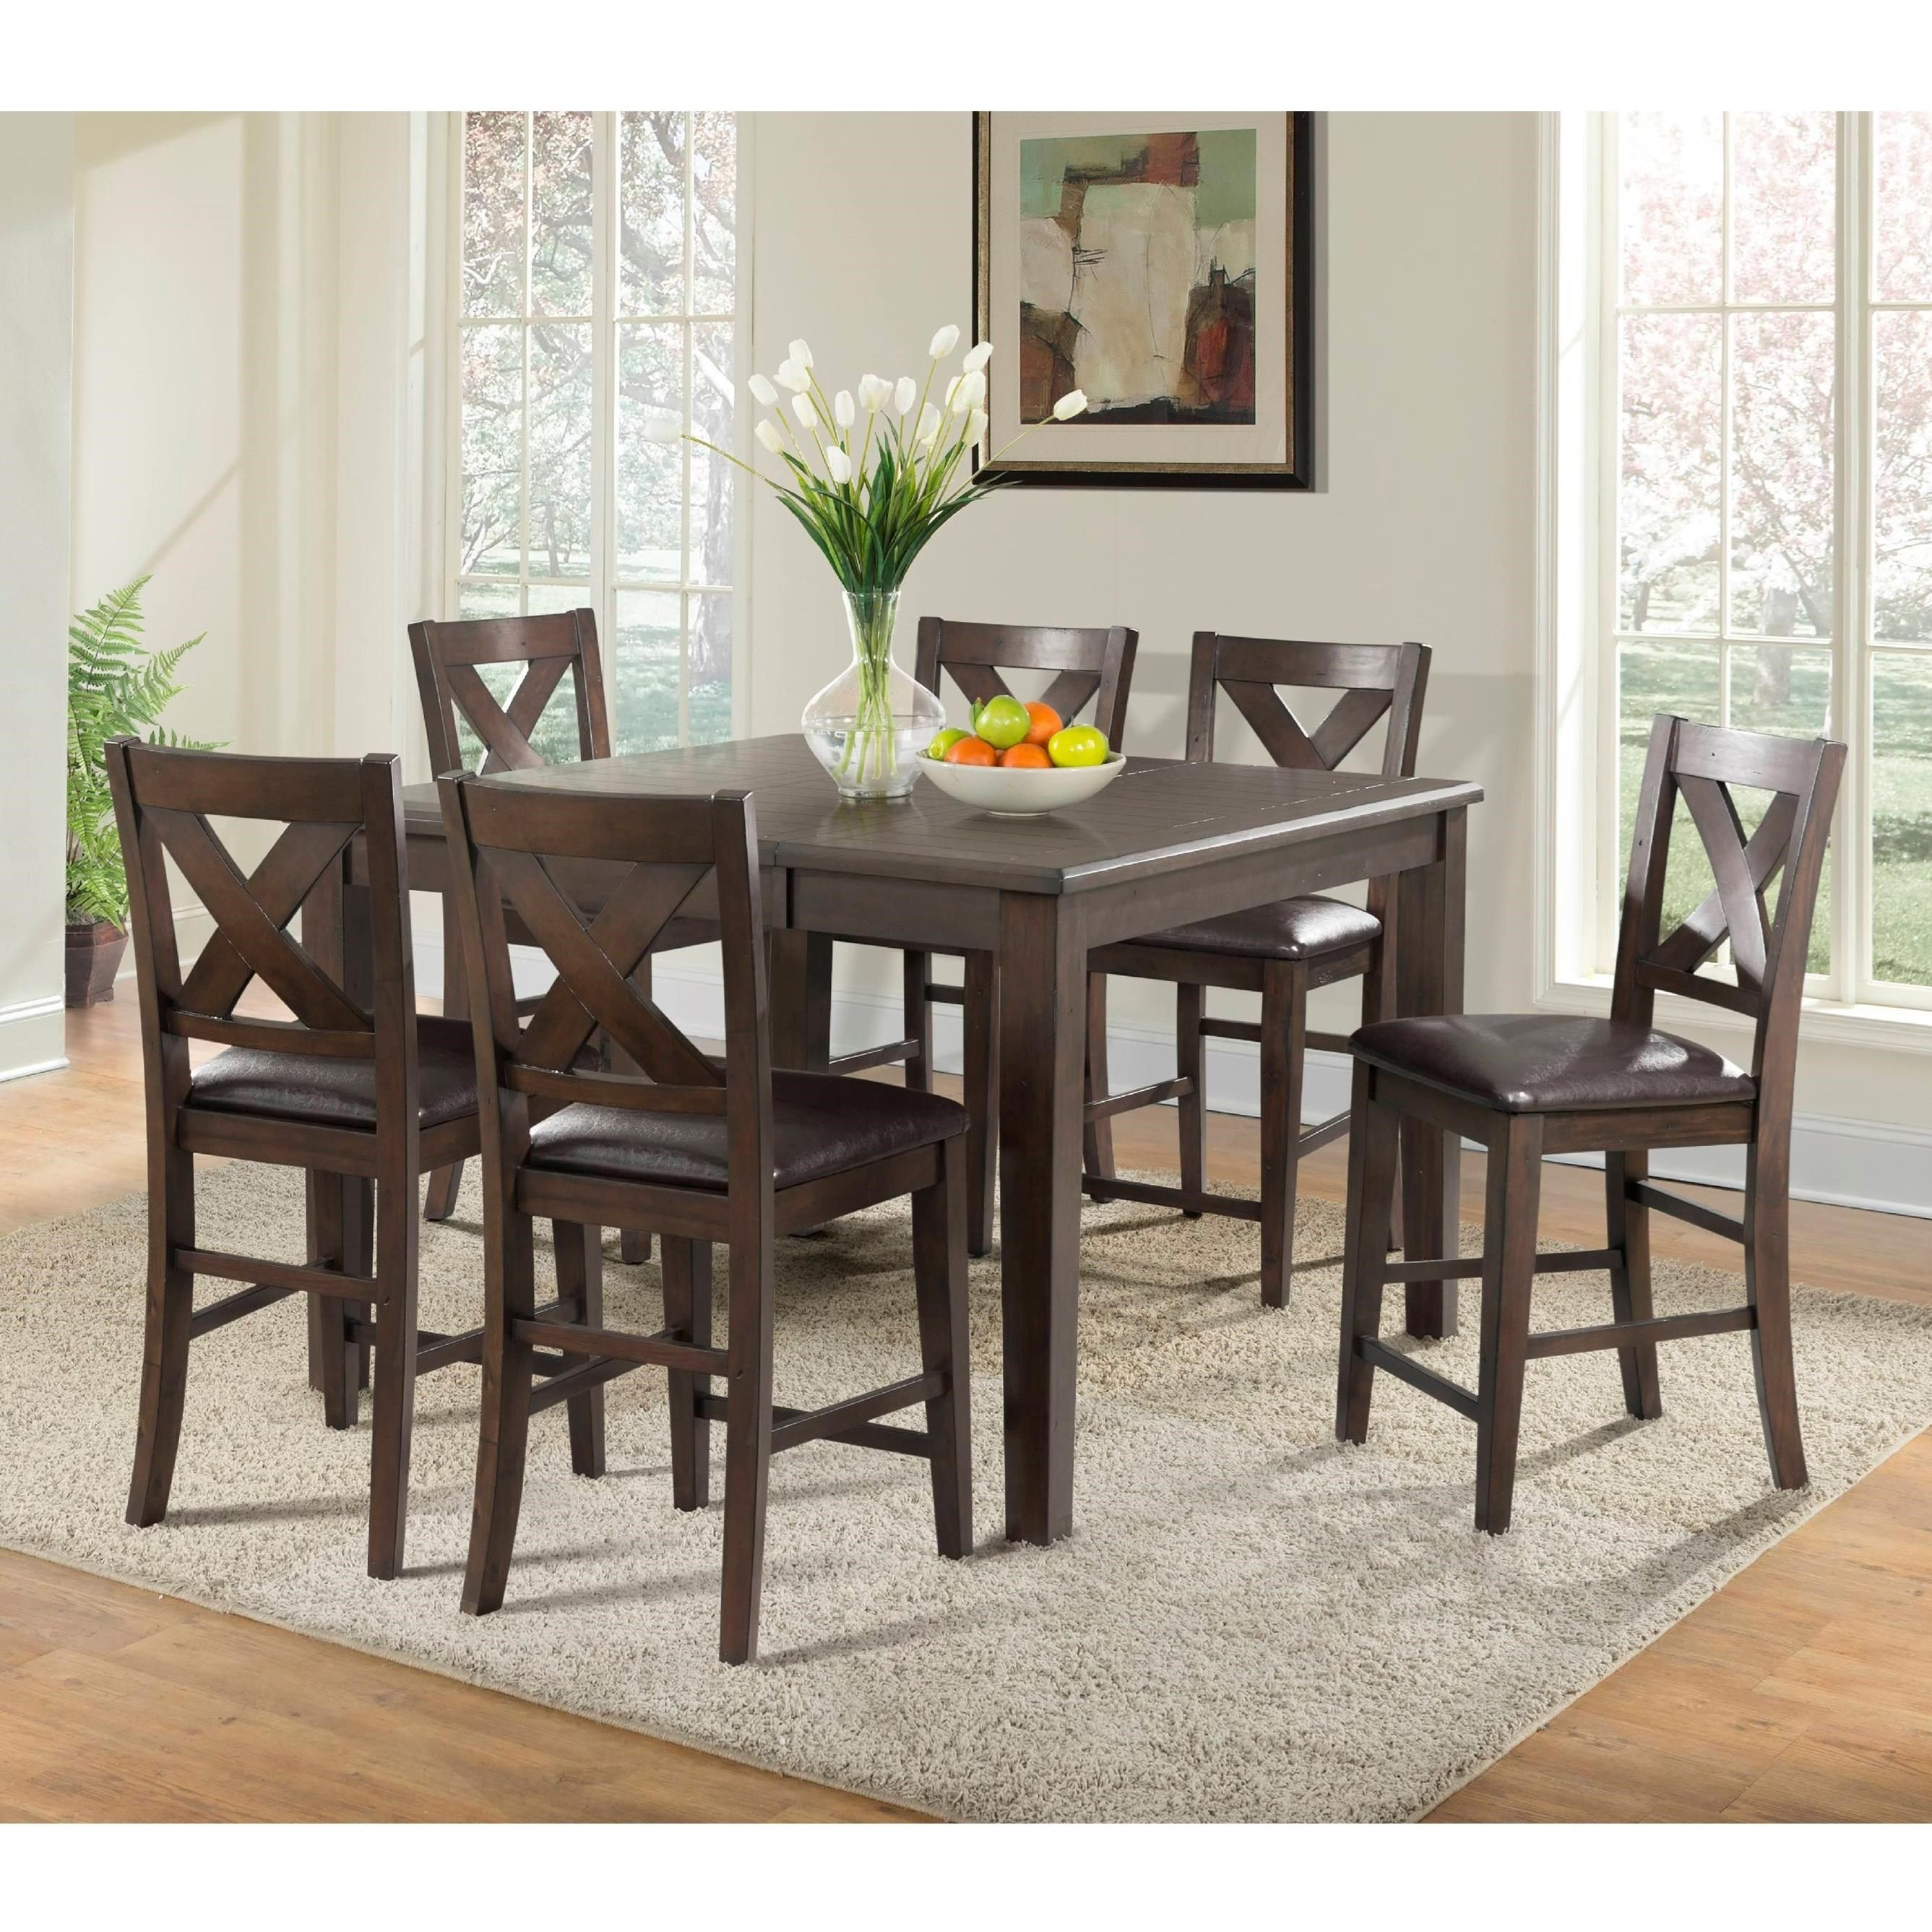 Cooper Ridge Counter Height Table And Chair Set By Elements